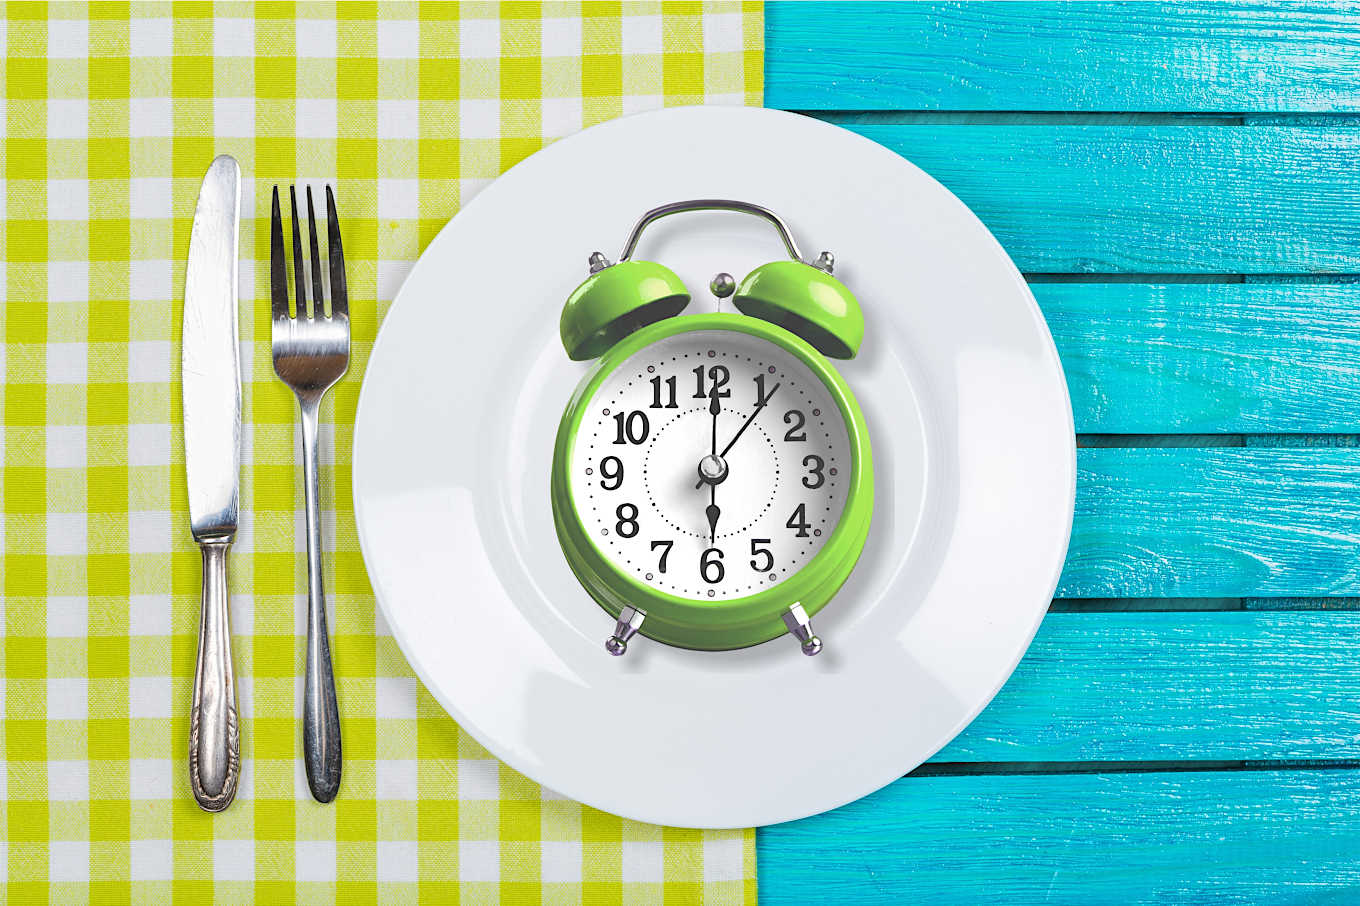 Want to try a fasting diet? Here is everything you need to know